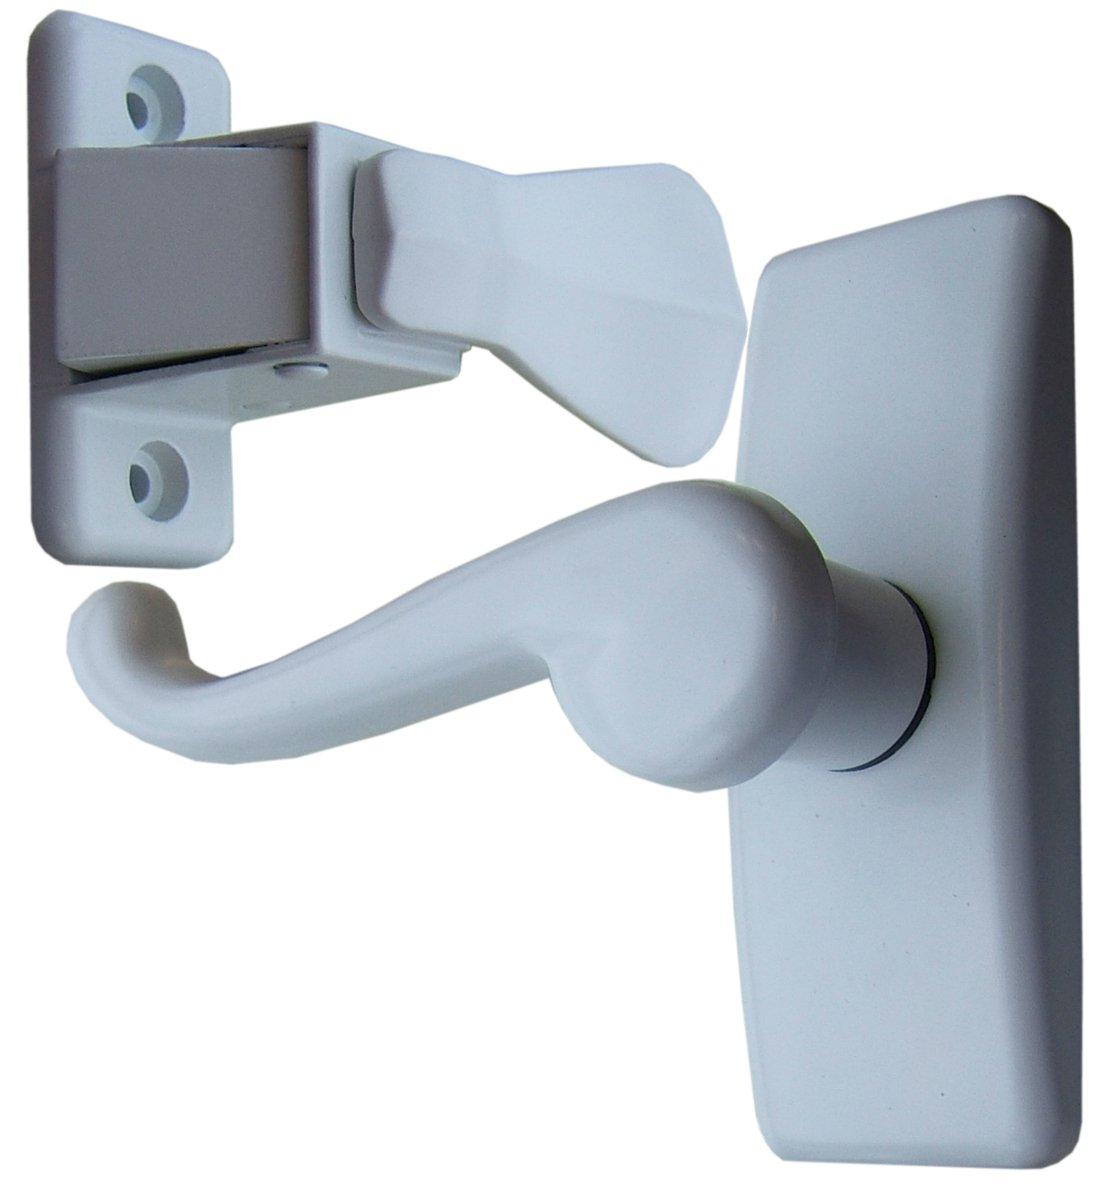 Charmant Ideal Security Inc. SKGLWH Storm Door Lever Handle Set, White     Amazon.com